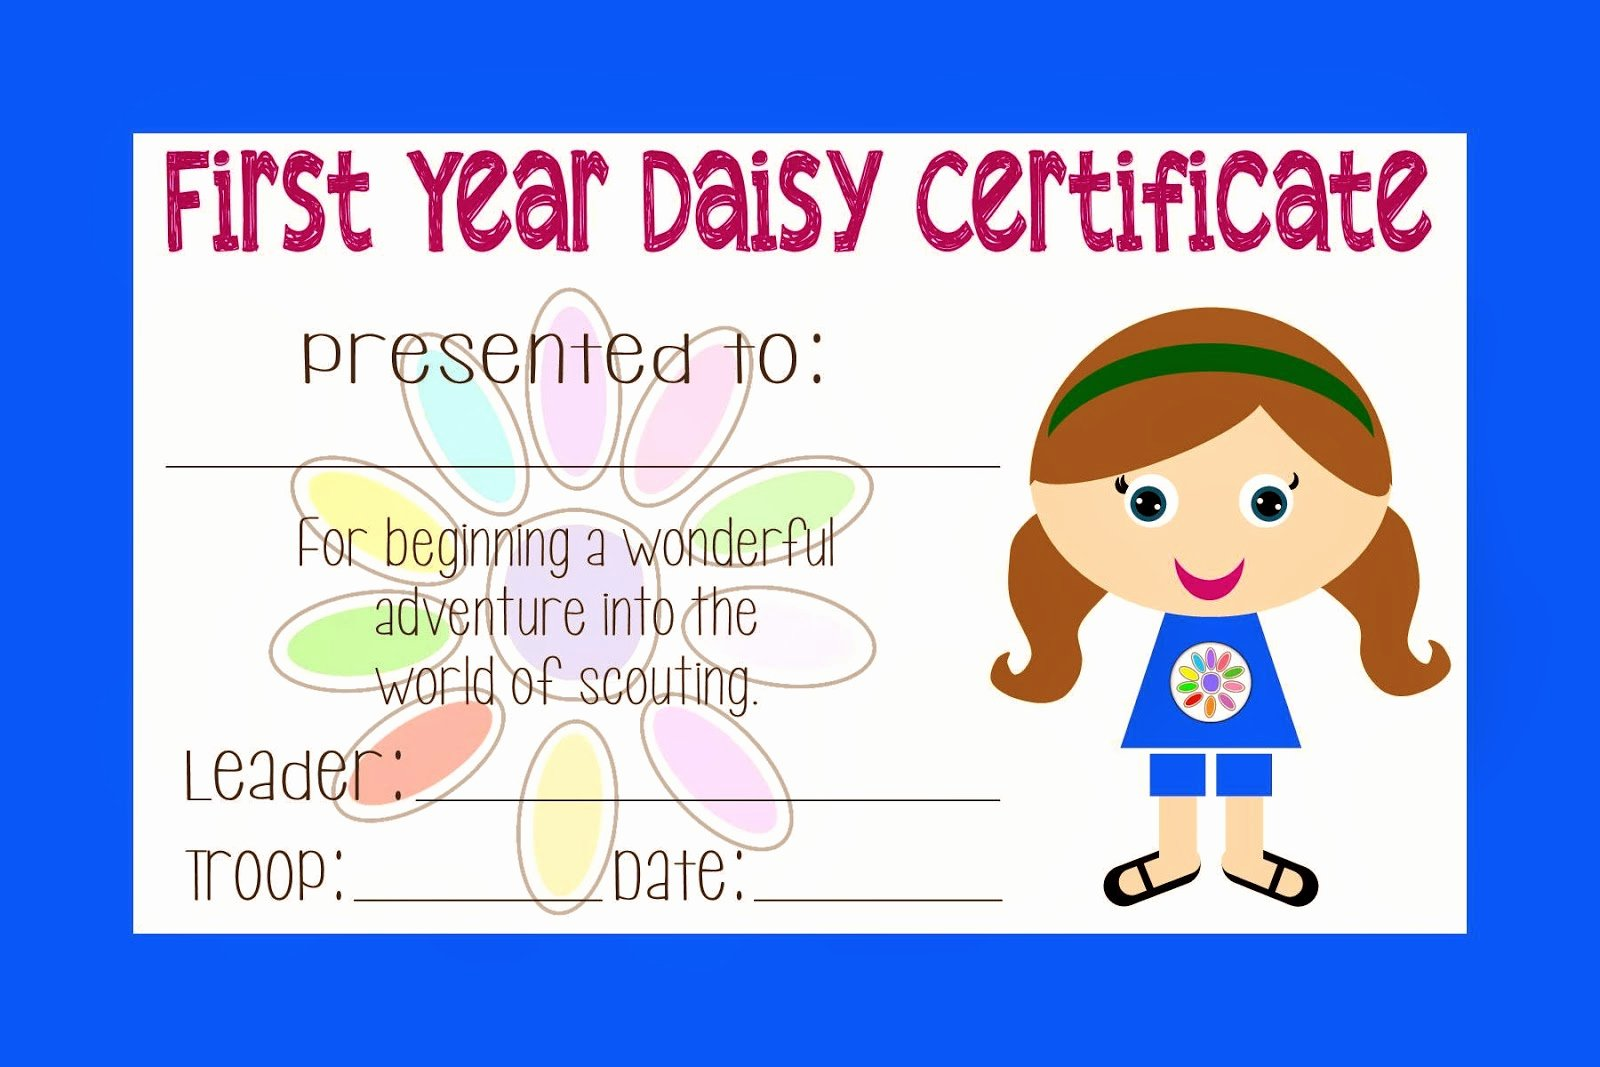 Girl Scout Bridging Certificate Inspirational Two Magical Moms Girl Scout Daisy Certificate